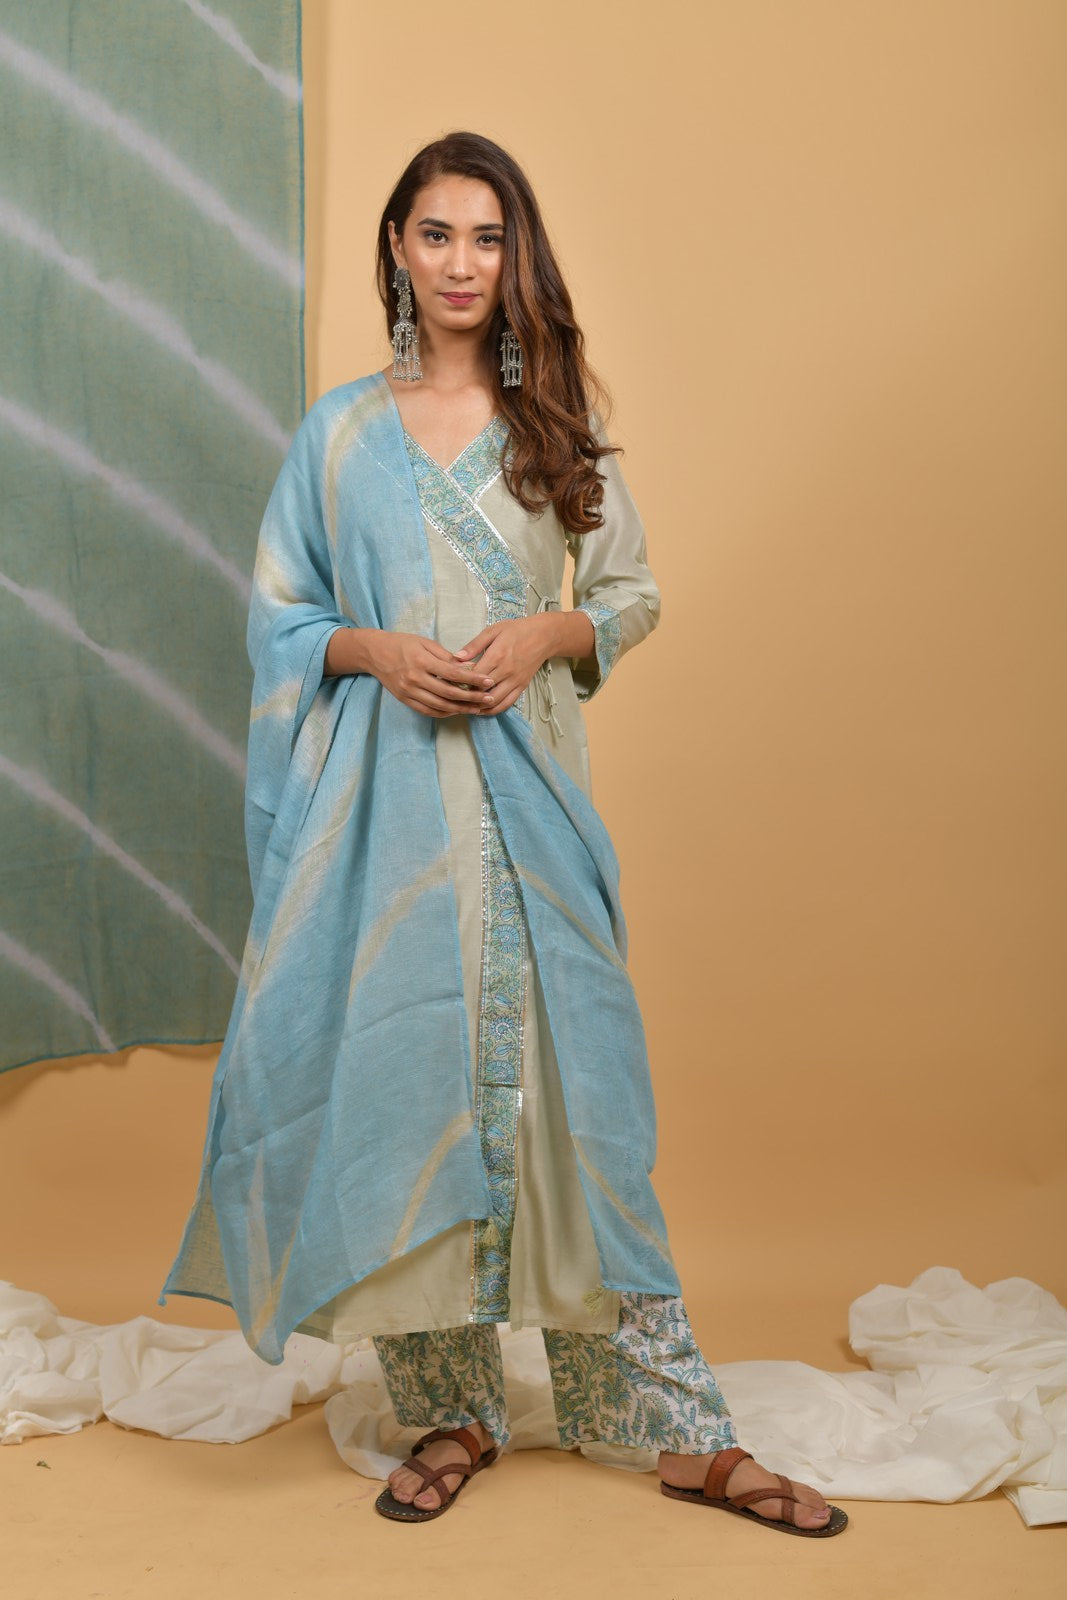 Mint - Powder Blue Chanderi-Silk Kurta & Leheriya Linen Dupatta Suit - Set of 3